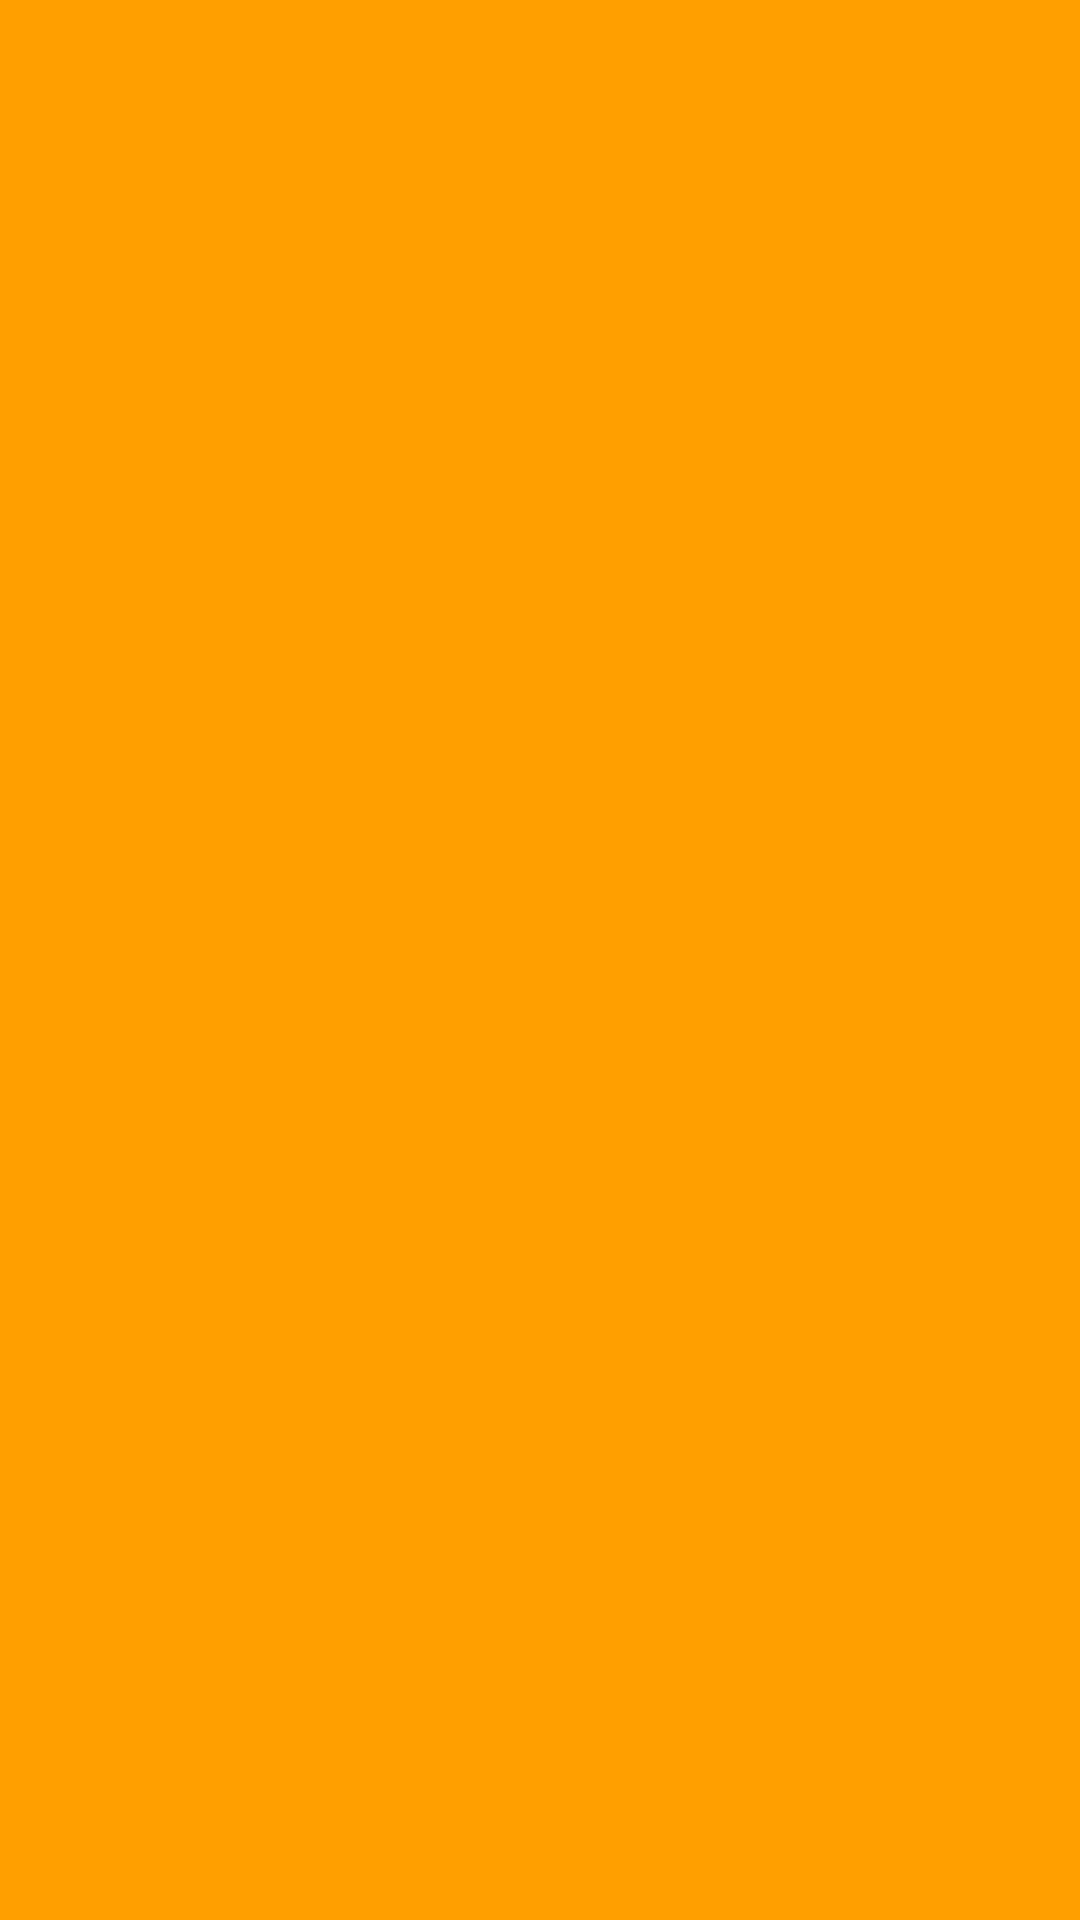 1080x1920 Orange Peel Solid Color Background